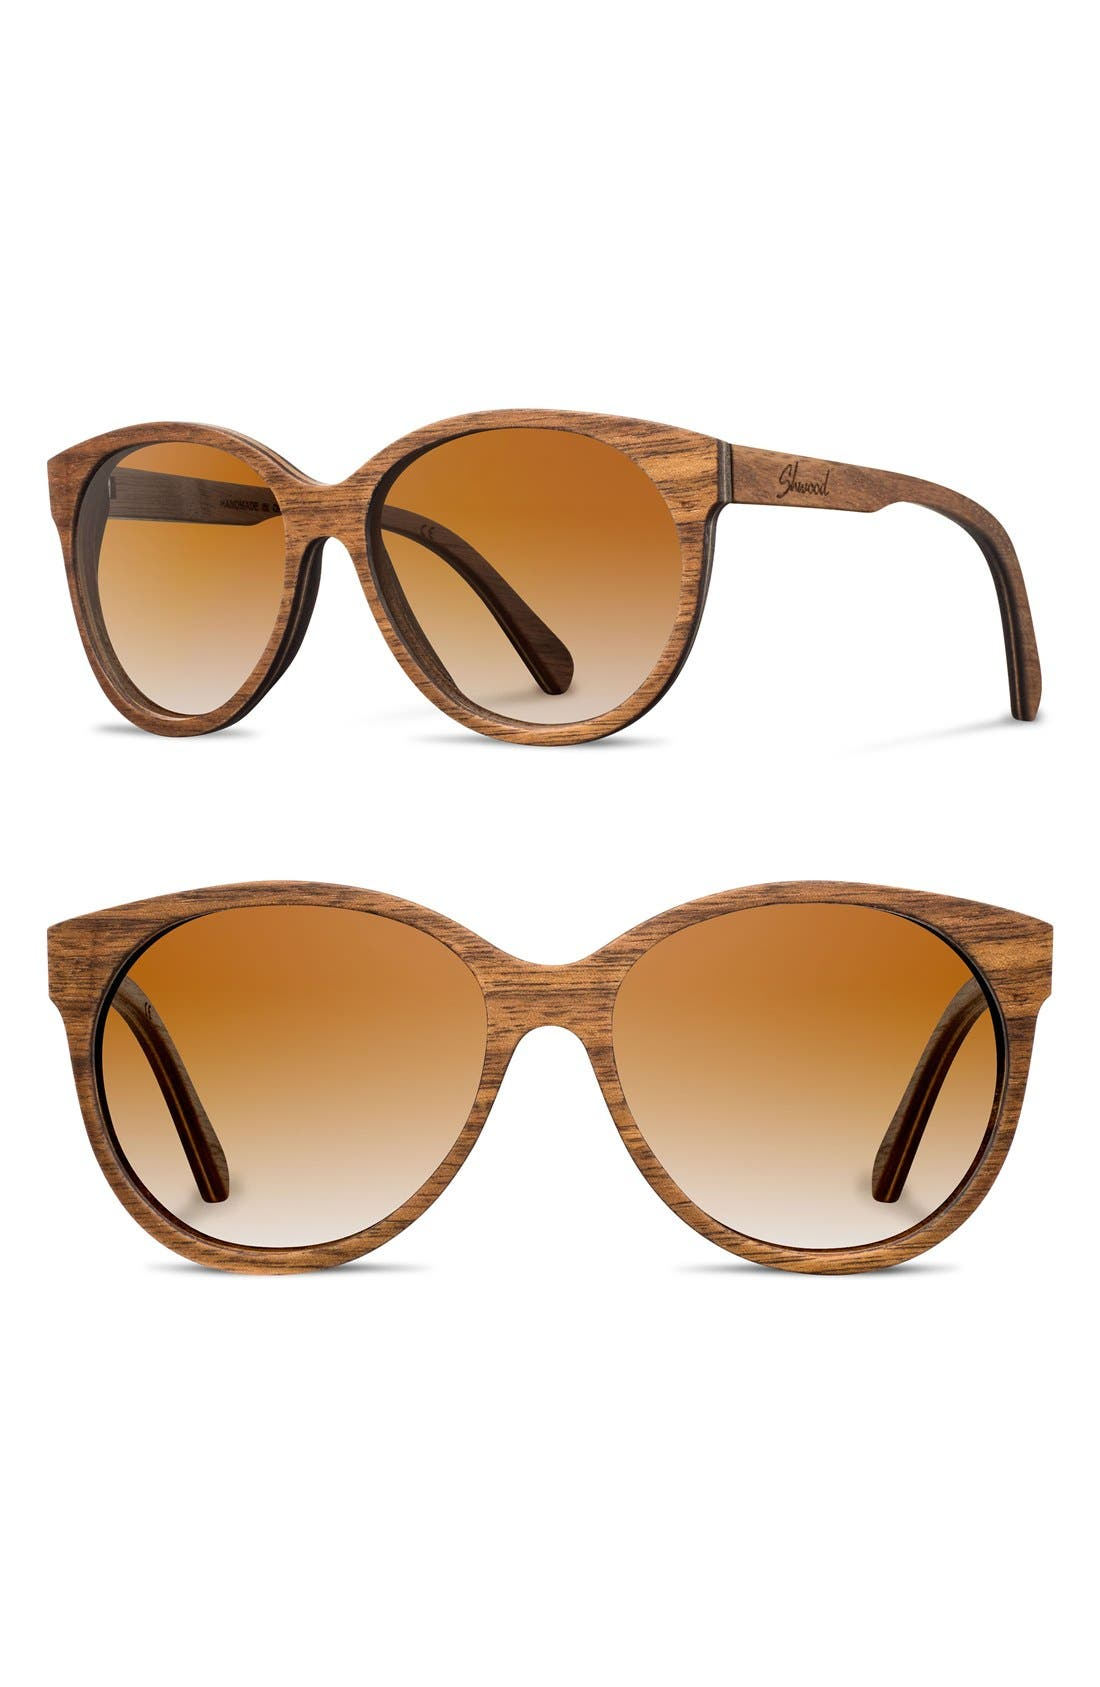 SHWOOD Madison 54mm Round Wood Sunglasses